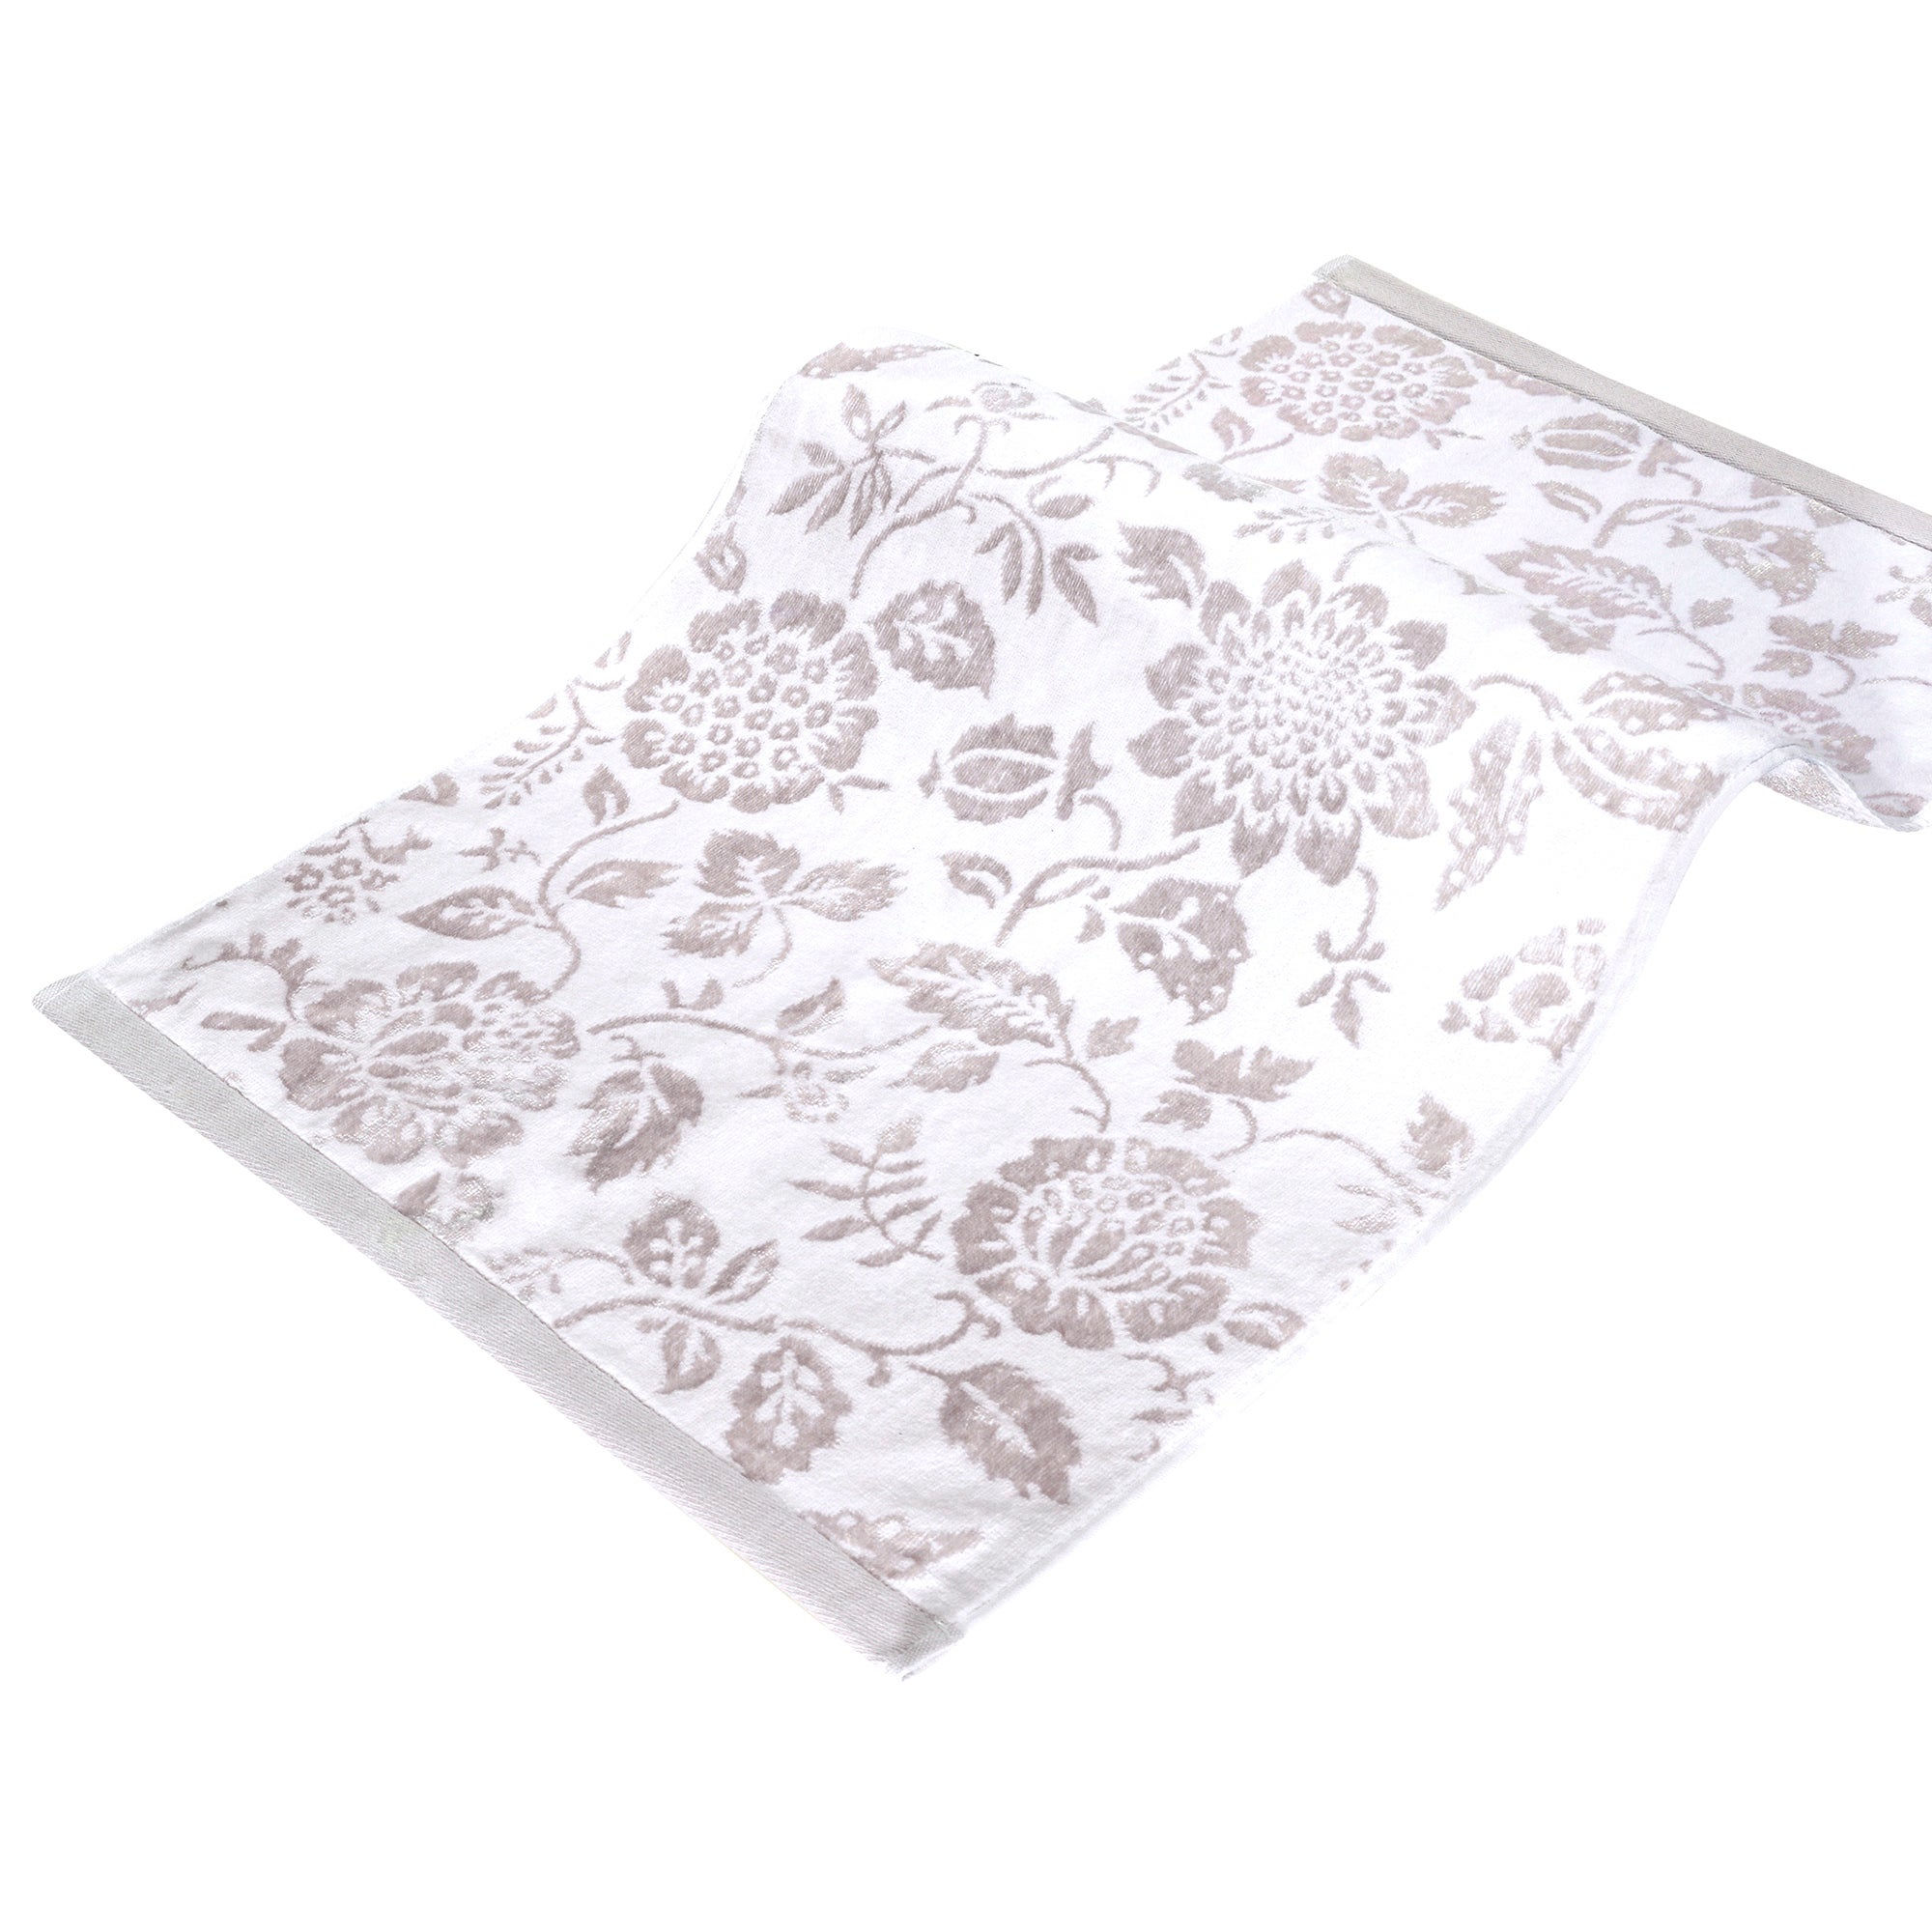 Hotel White Floral Towel